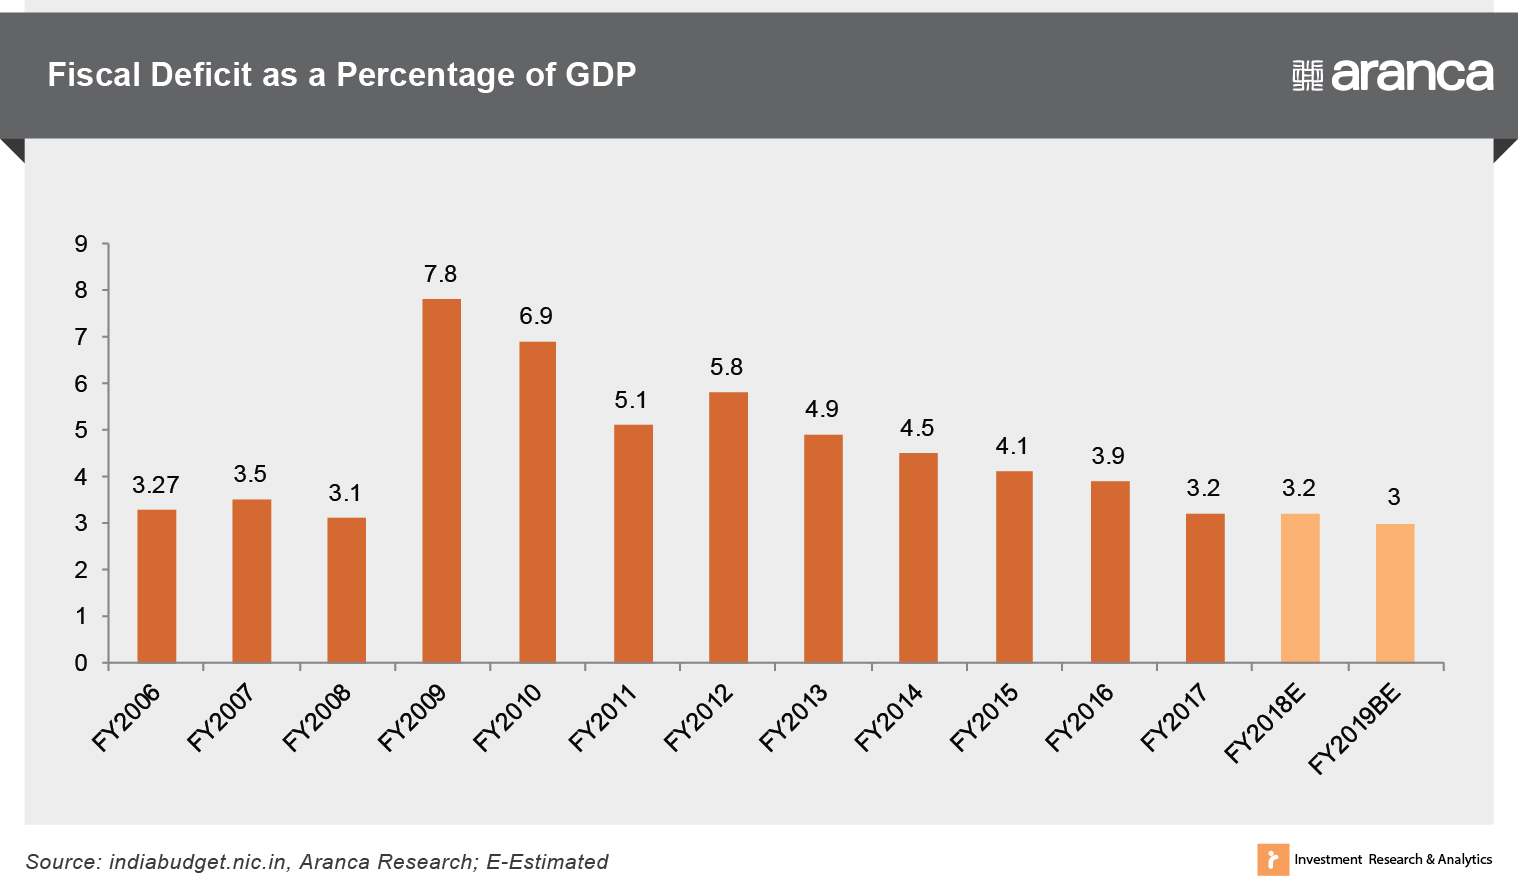 Fiscal Deficit as a Percentage of GDP